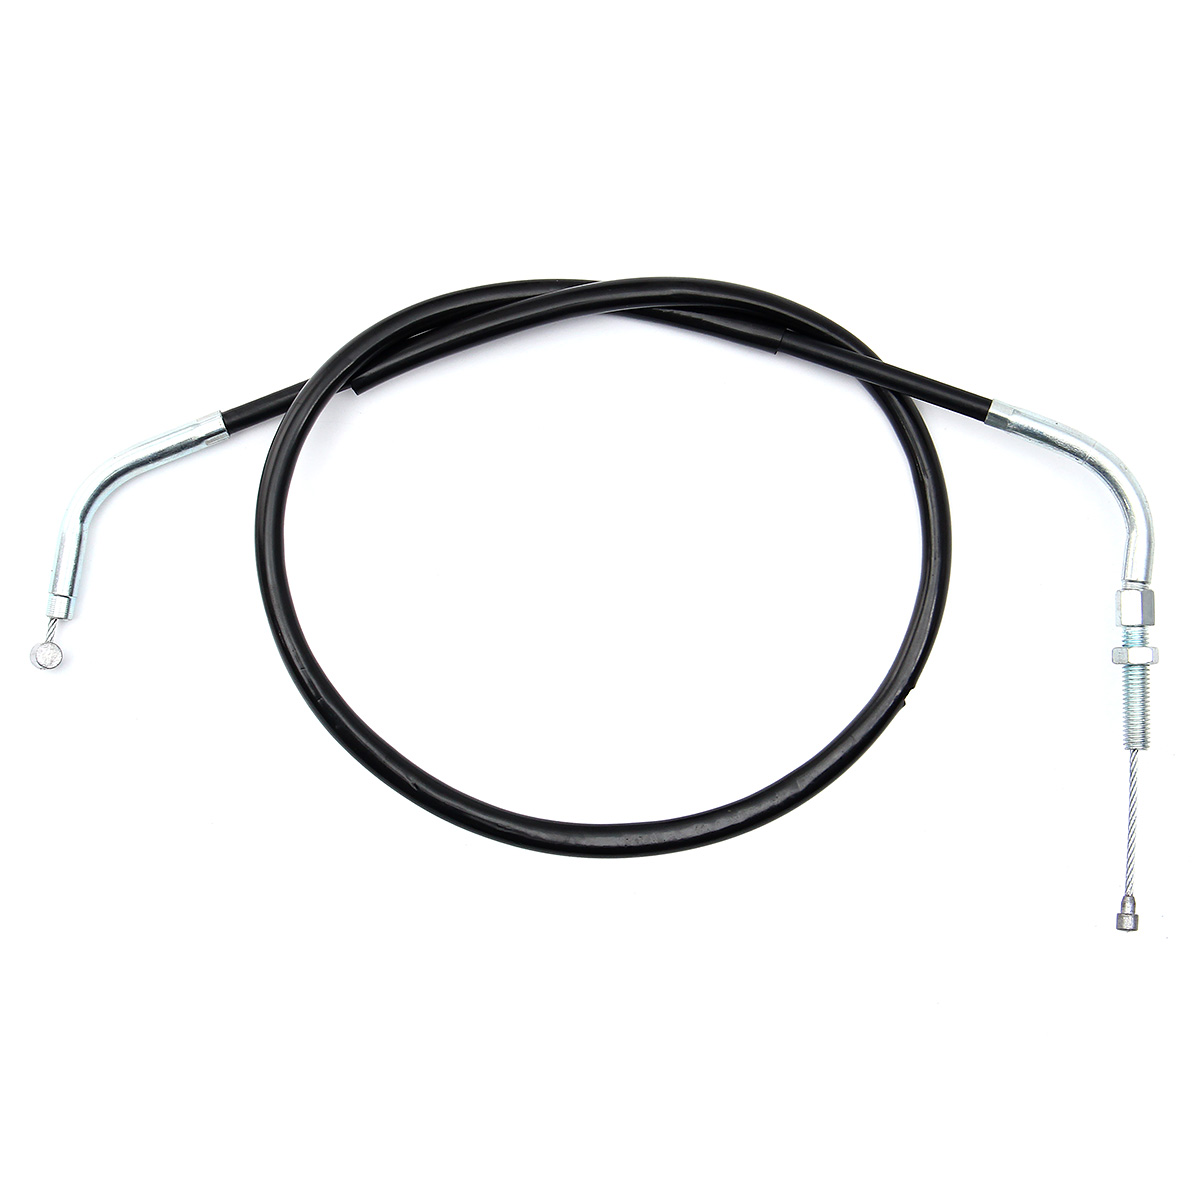 Motorcycle Clutch Cable For Suzuki GSXR750 1996-1999 GS